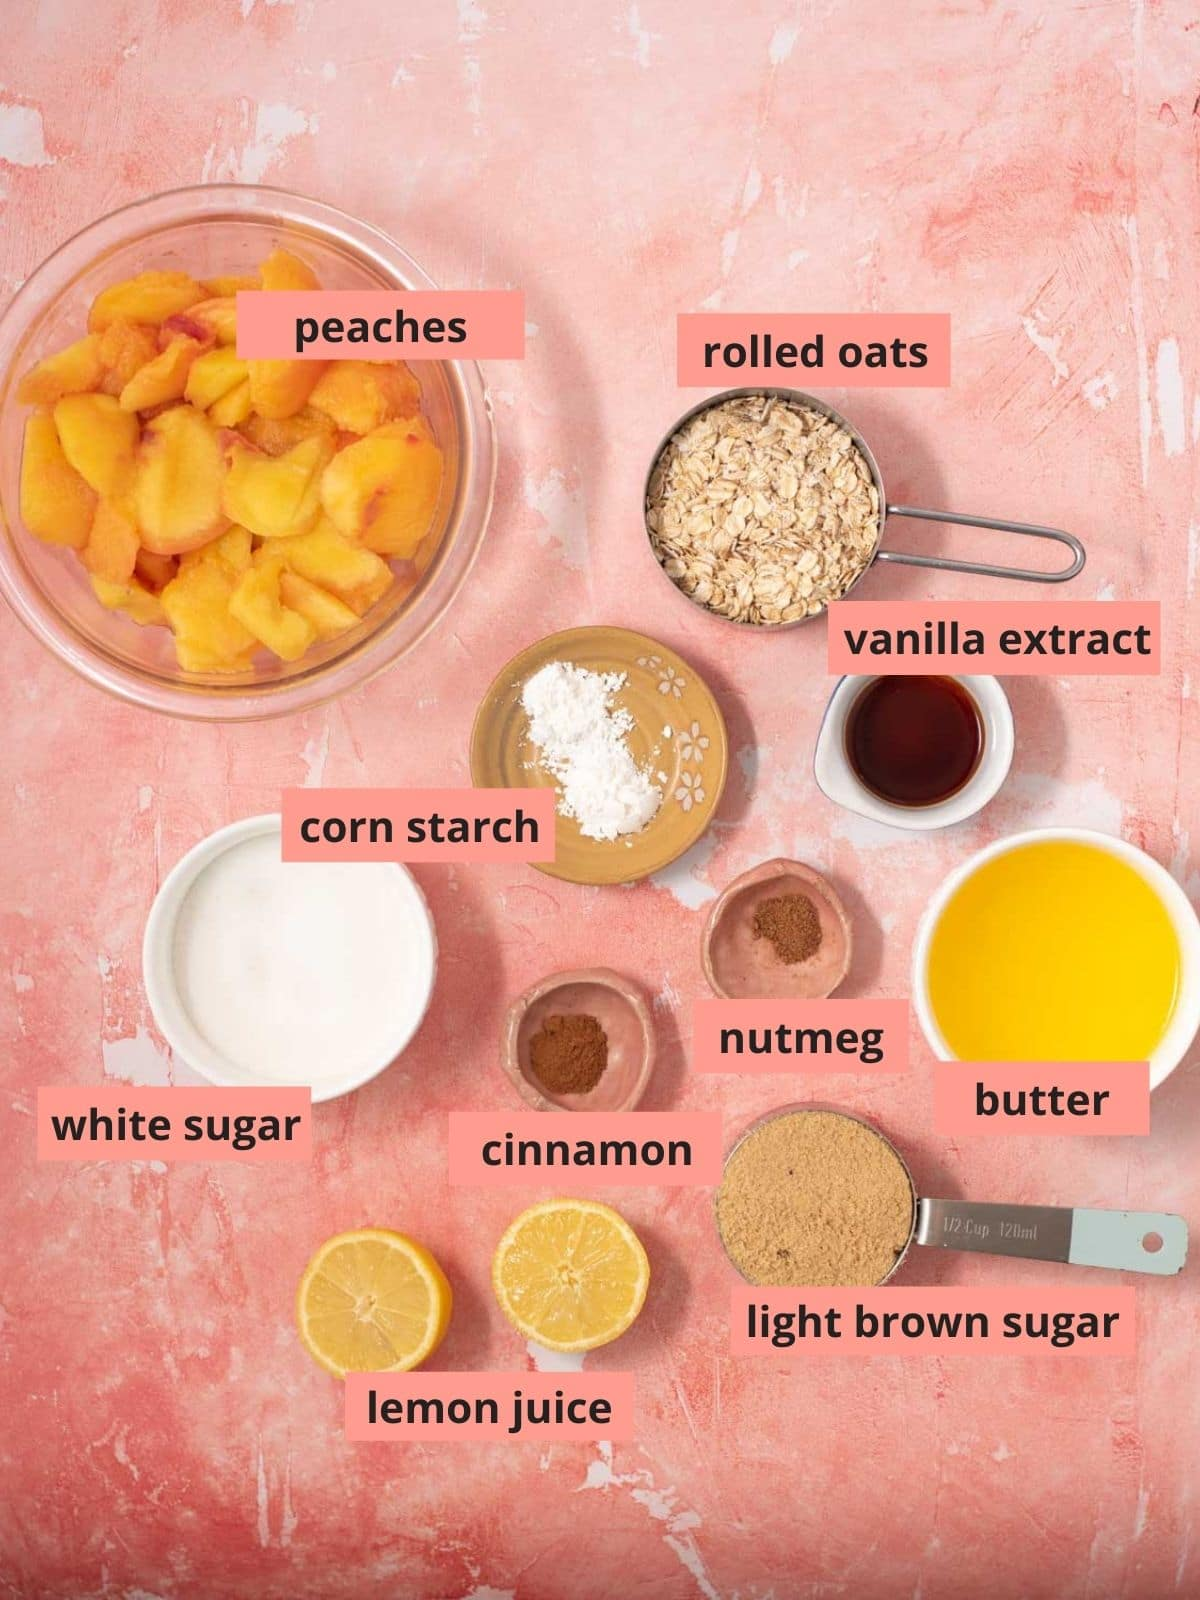 Labeled ingredients used to make peach bars